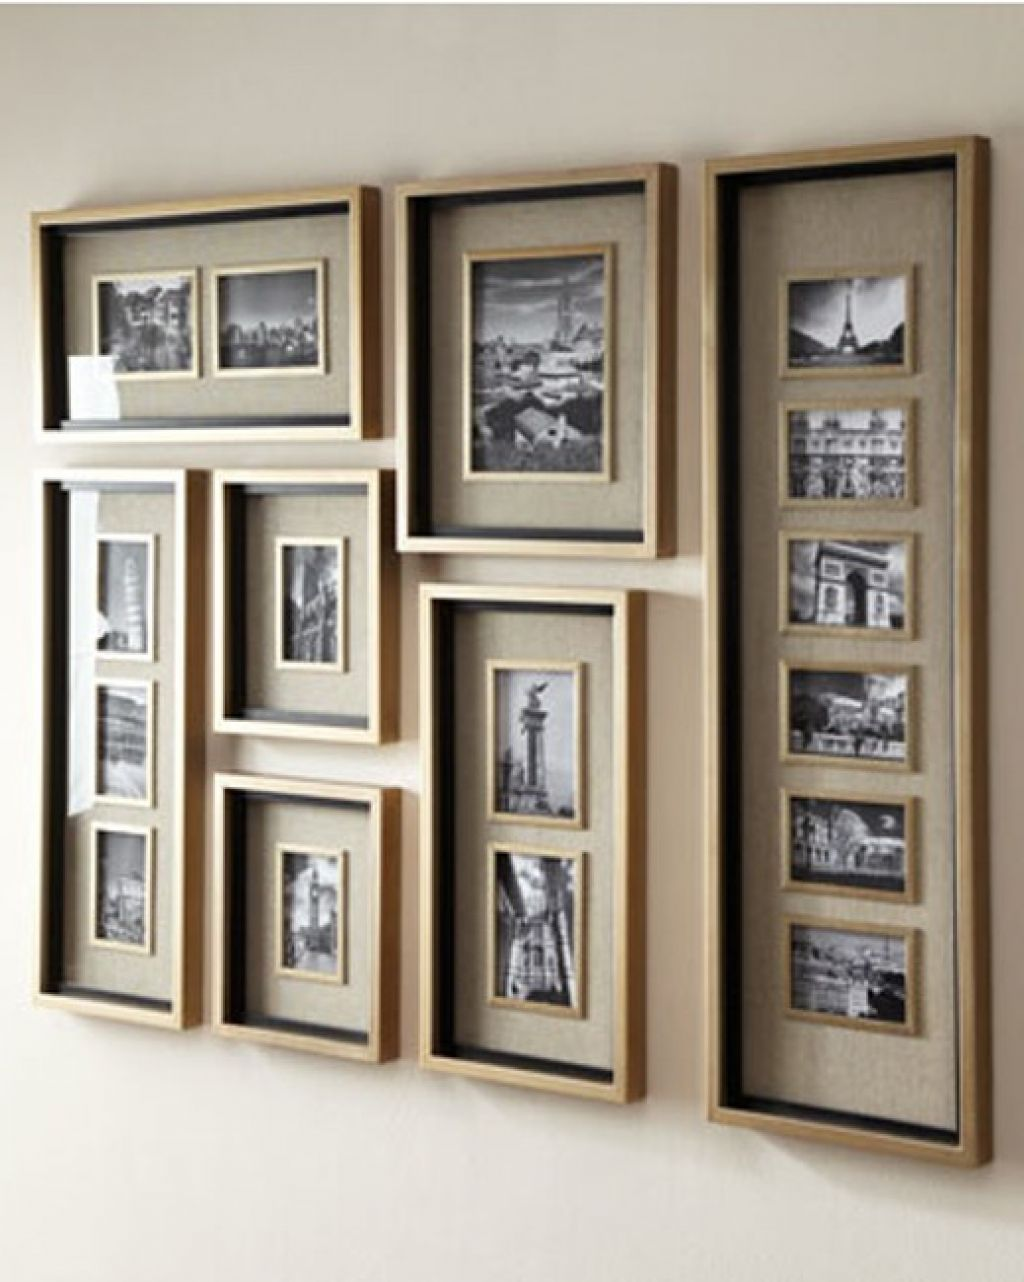 12 inspirational diy picture frame ideas making yours like never 12 inspirational diy picture frame ideas making yours like never before jeuxipadfo Gallery